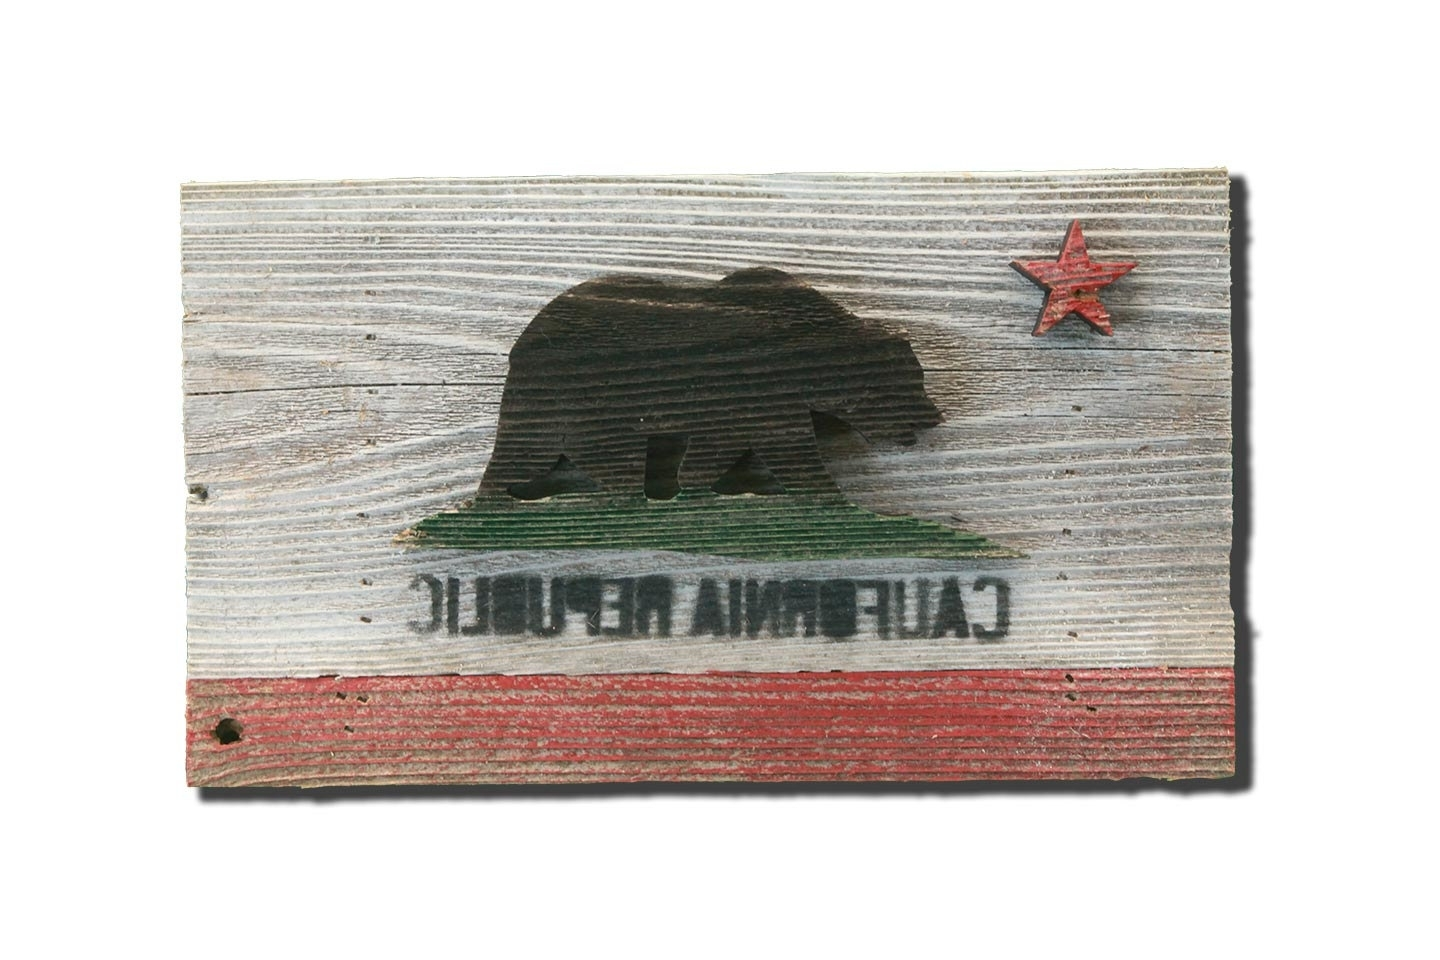 California Wall Art Intended For Widely Used Handmade, Reclaimed Wooden California Flag, Vintage, Art, Distressed (Gallery 17 of 20)